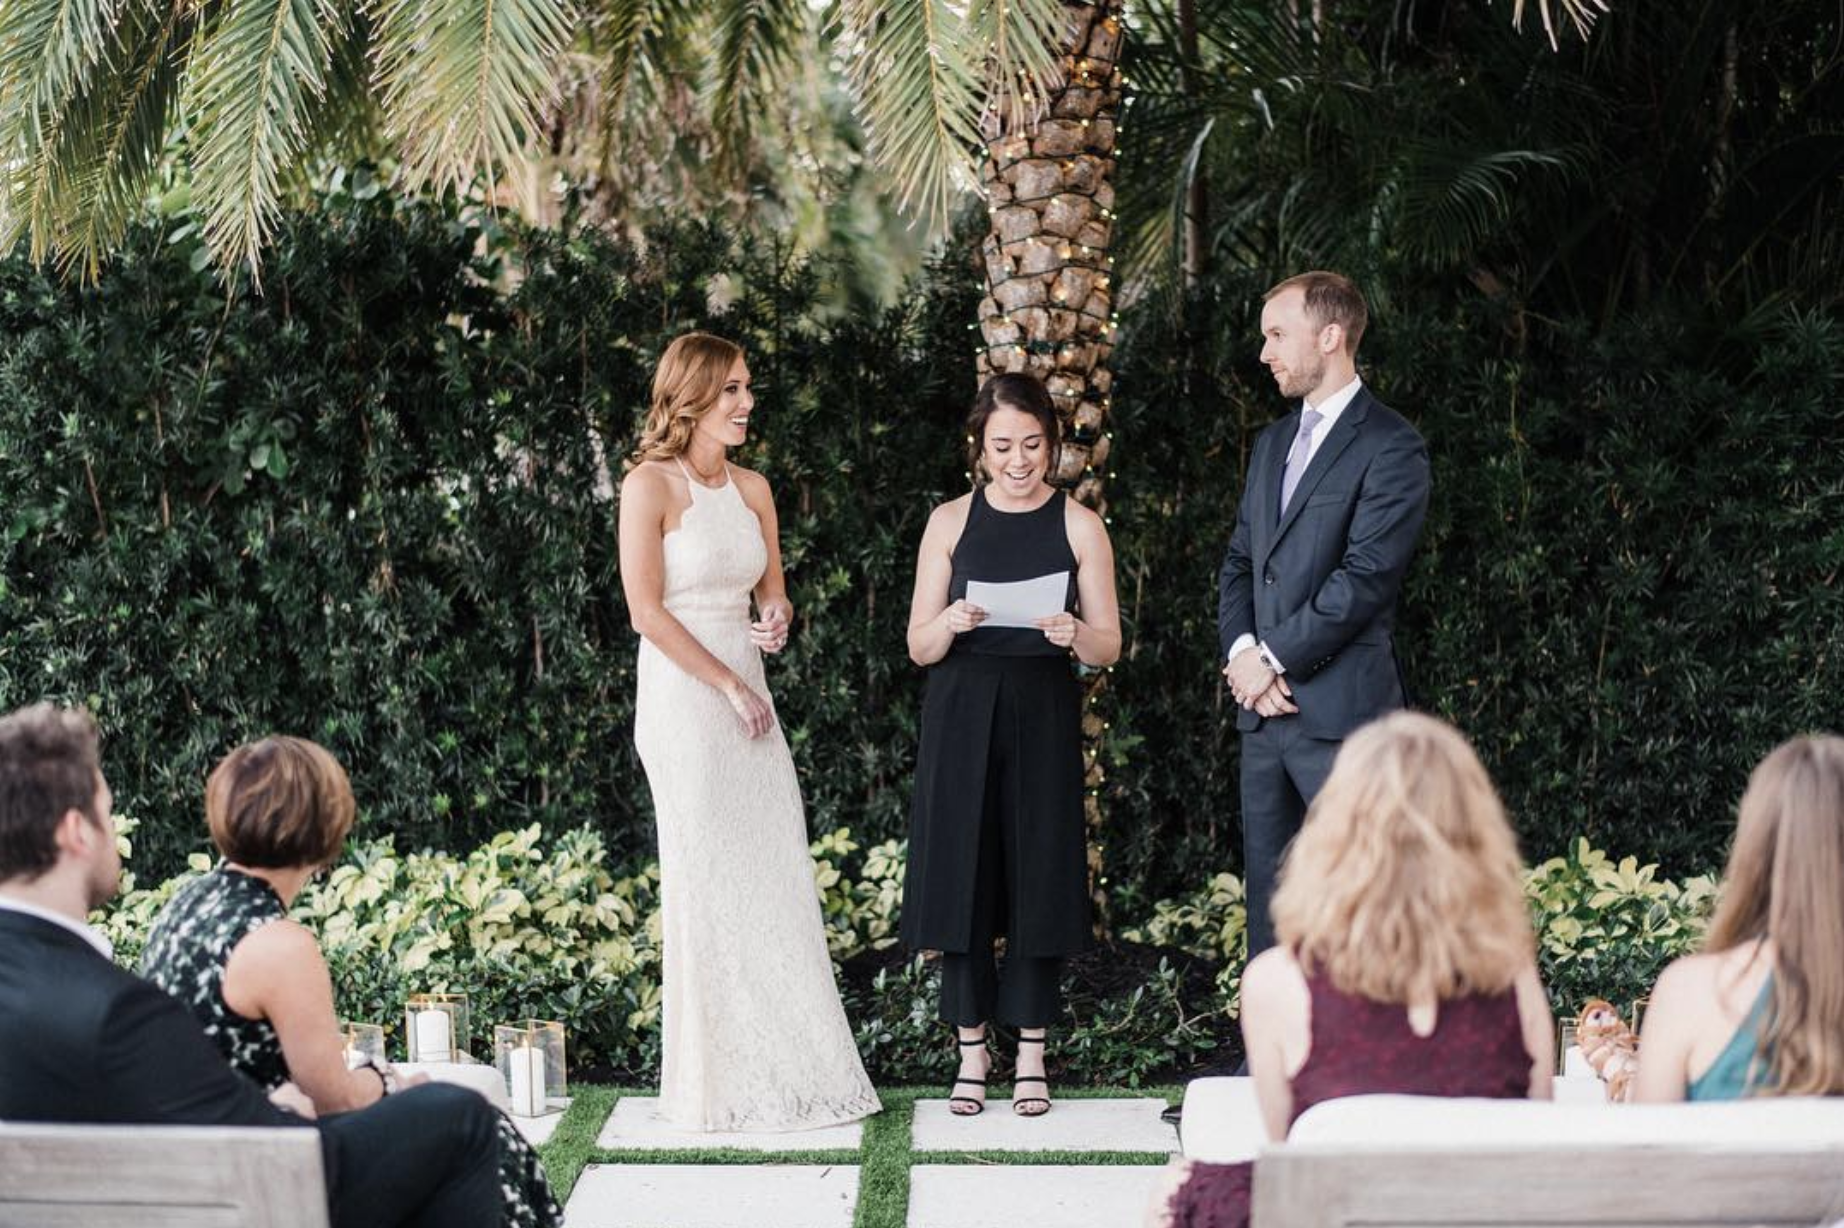 Officiant Services - Officiant Services: $600Includes:— Initial Meeting & Questionnaire— Rehearsal— Officiate Wedding Ceremony